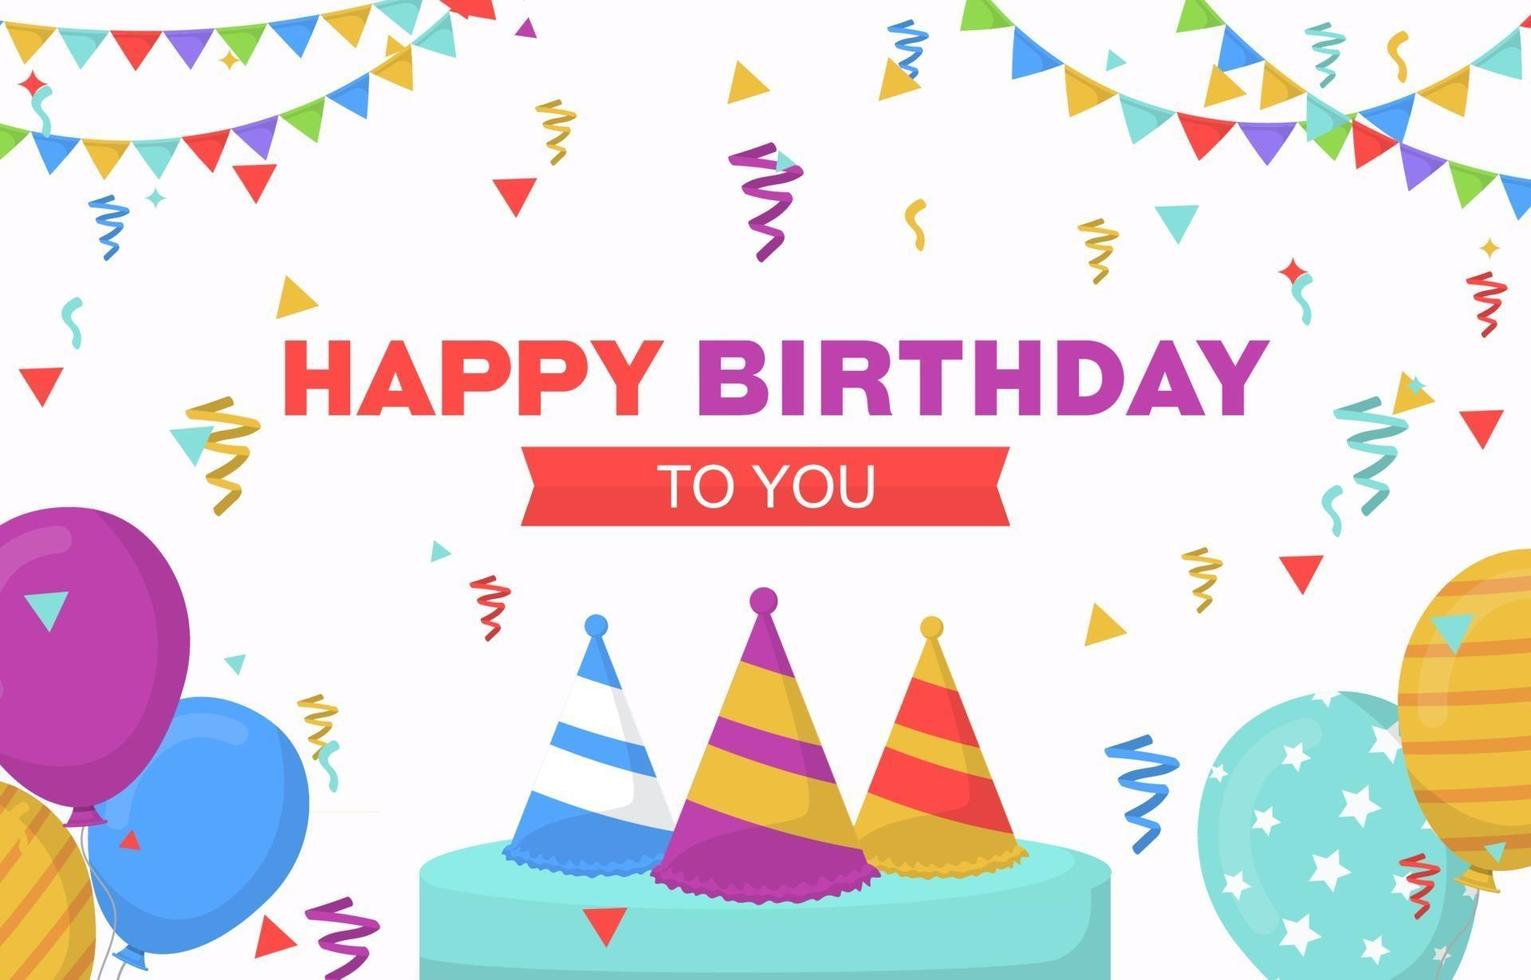 Happy Birthday Card with Party Balloons and Confetti vector